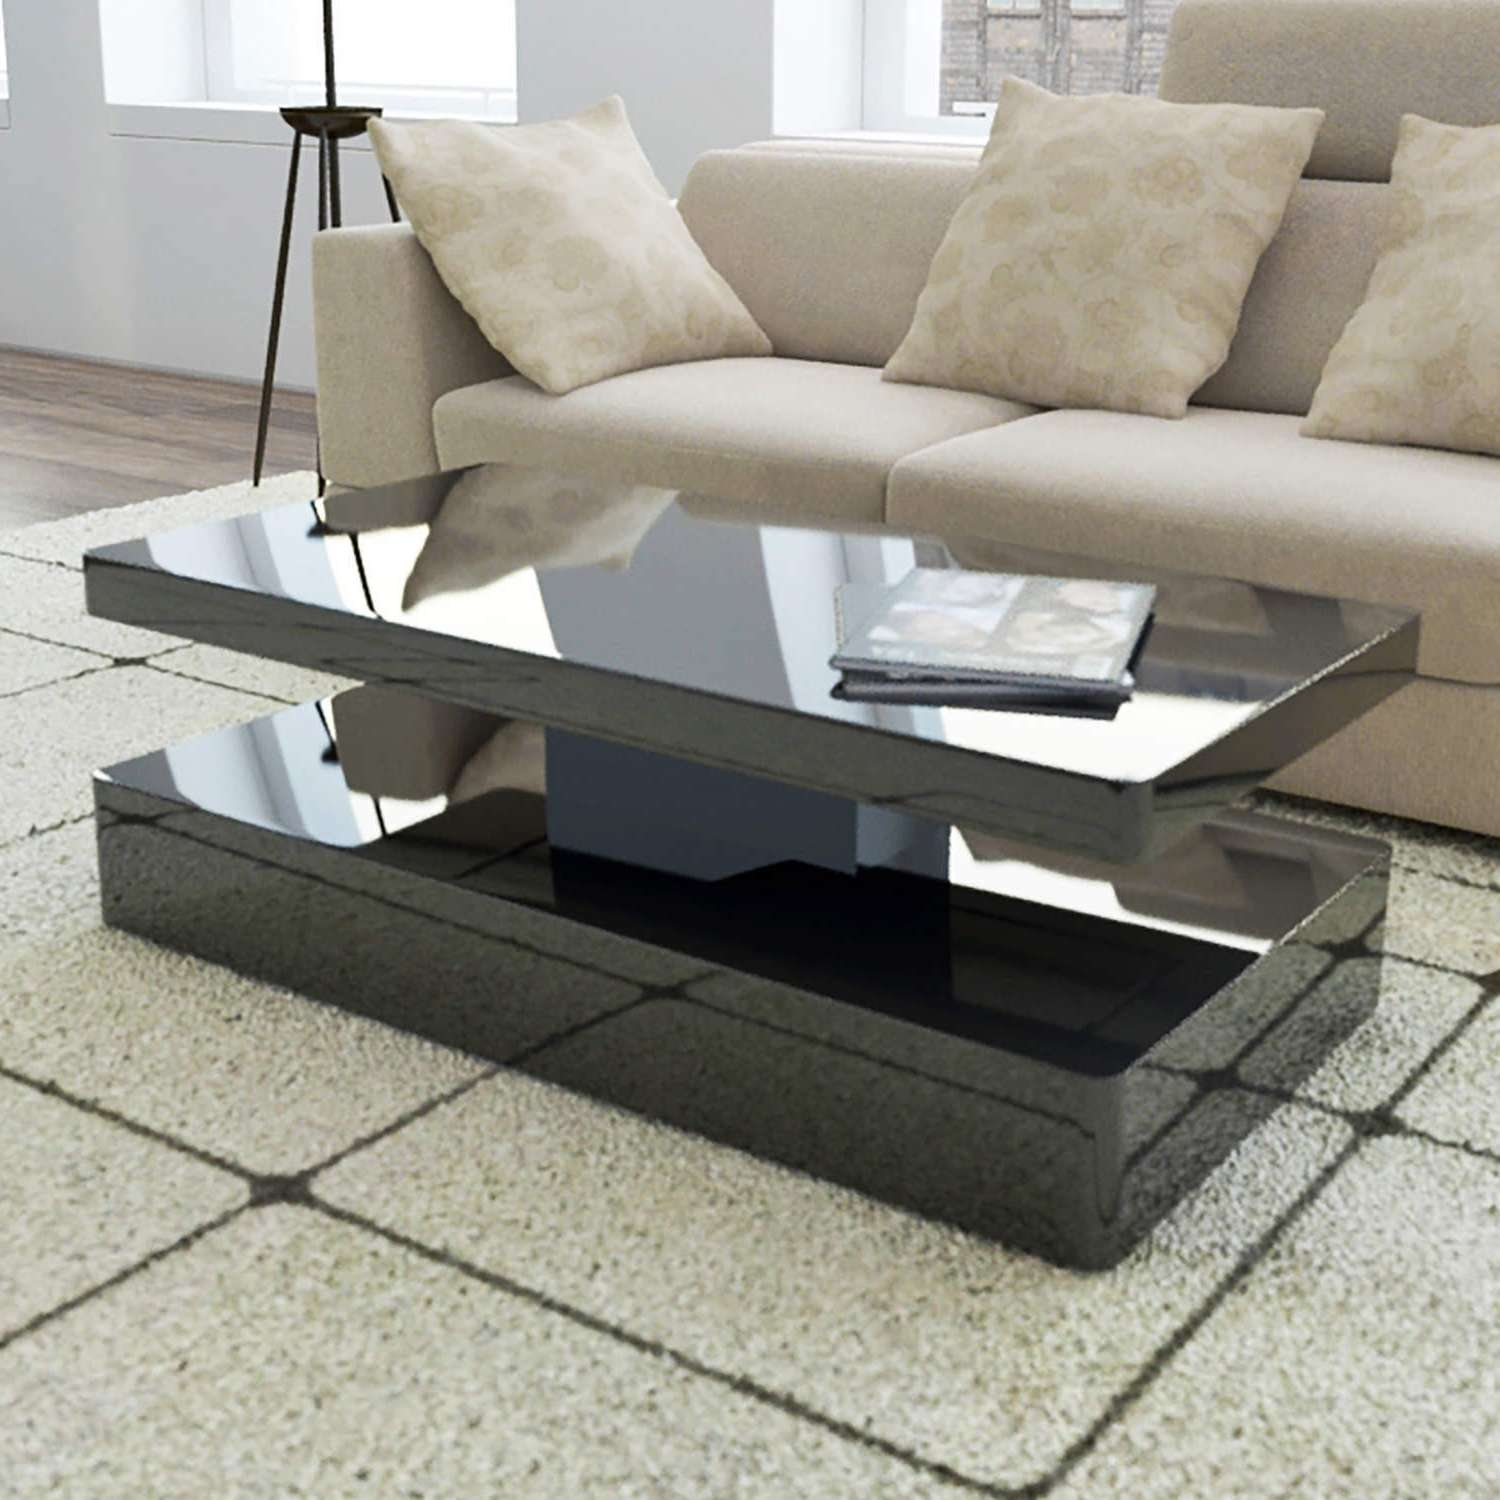 Tiffany White High Gloss Square Coffee Table Furniture: Best 20+ Of High Gloss Coffee Tables